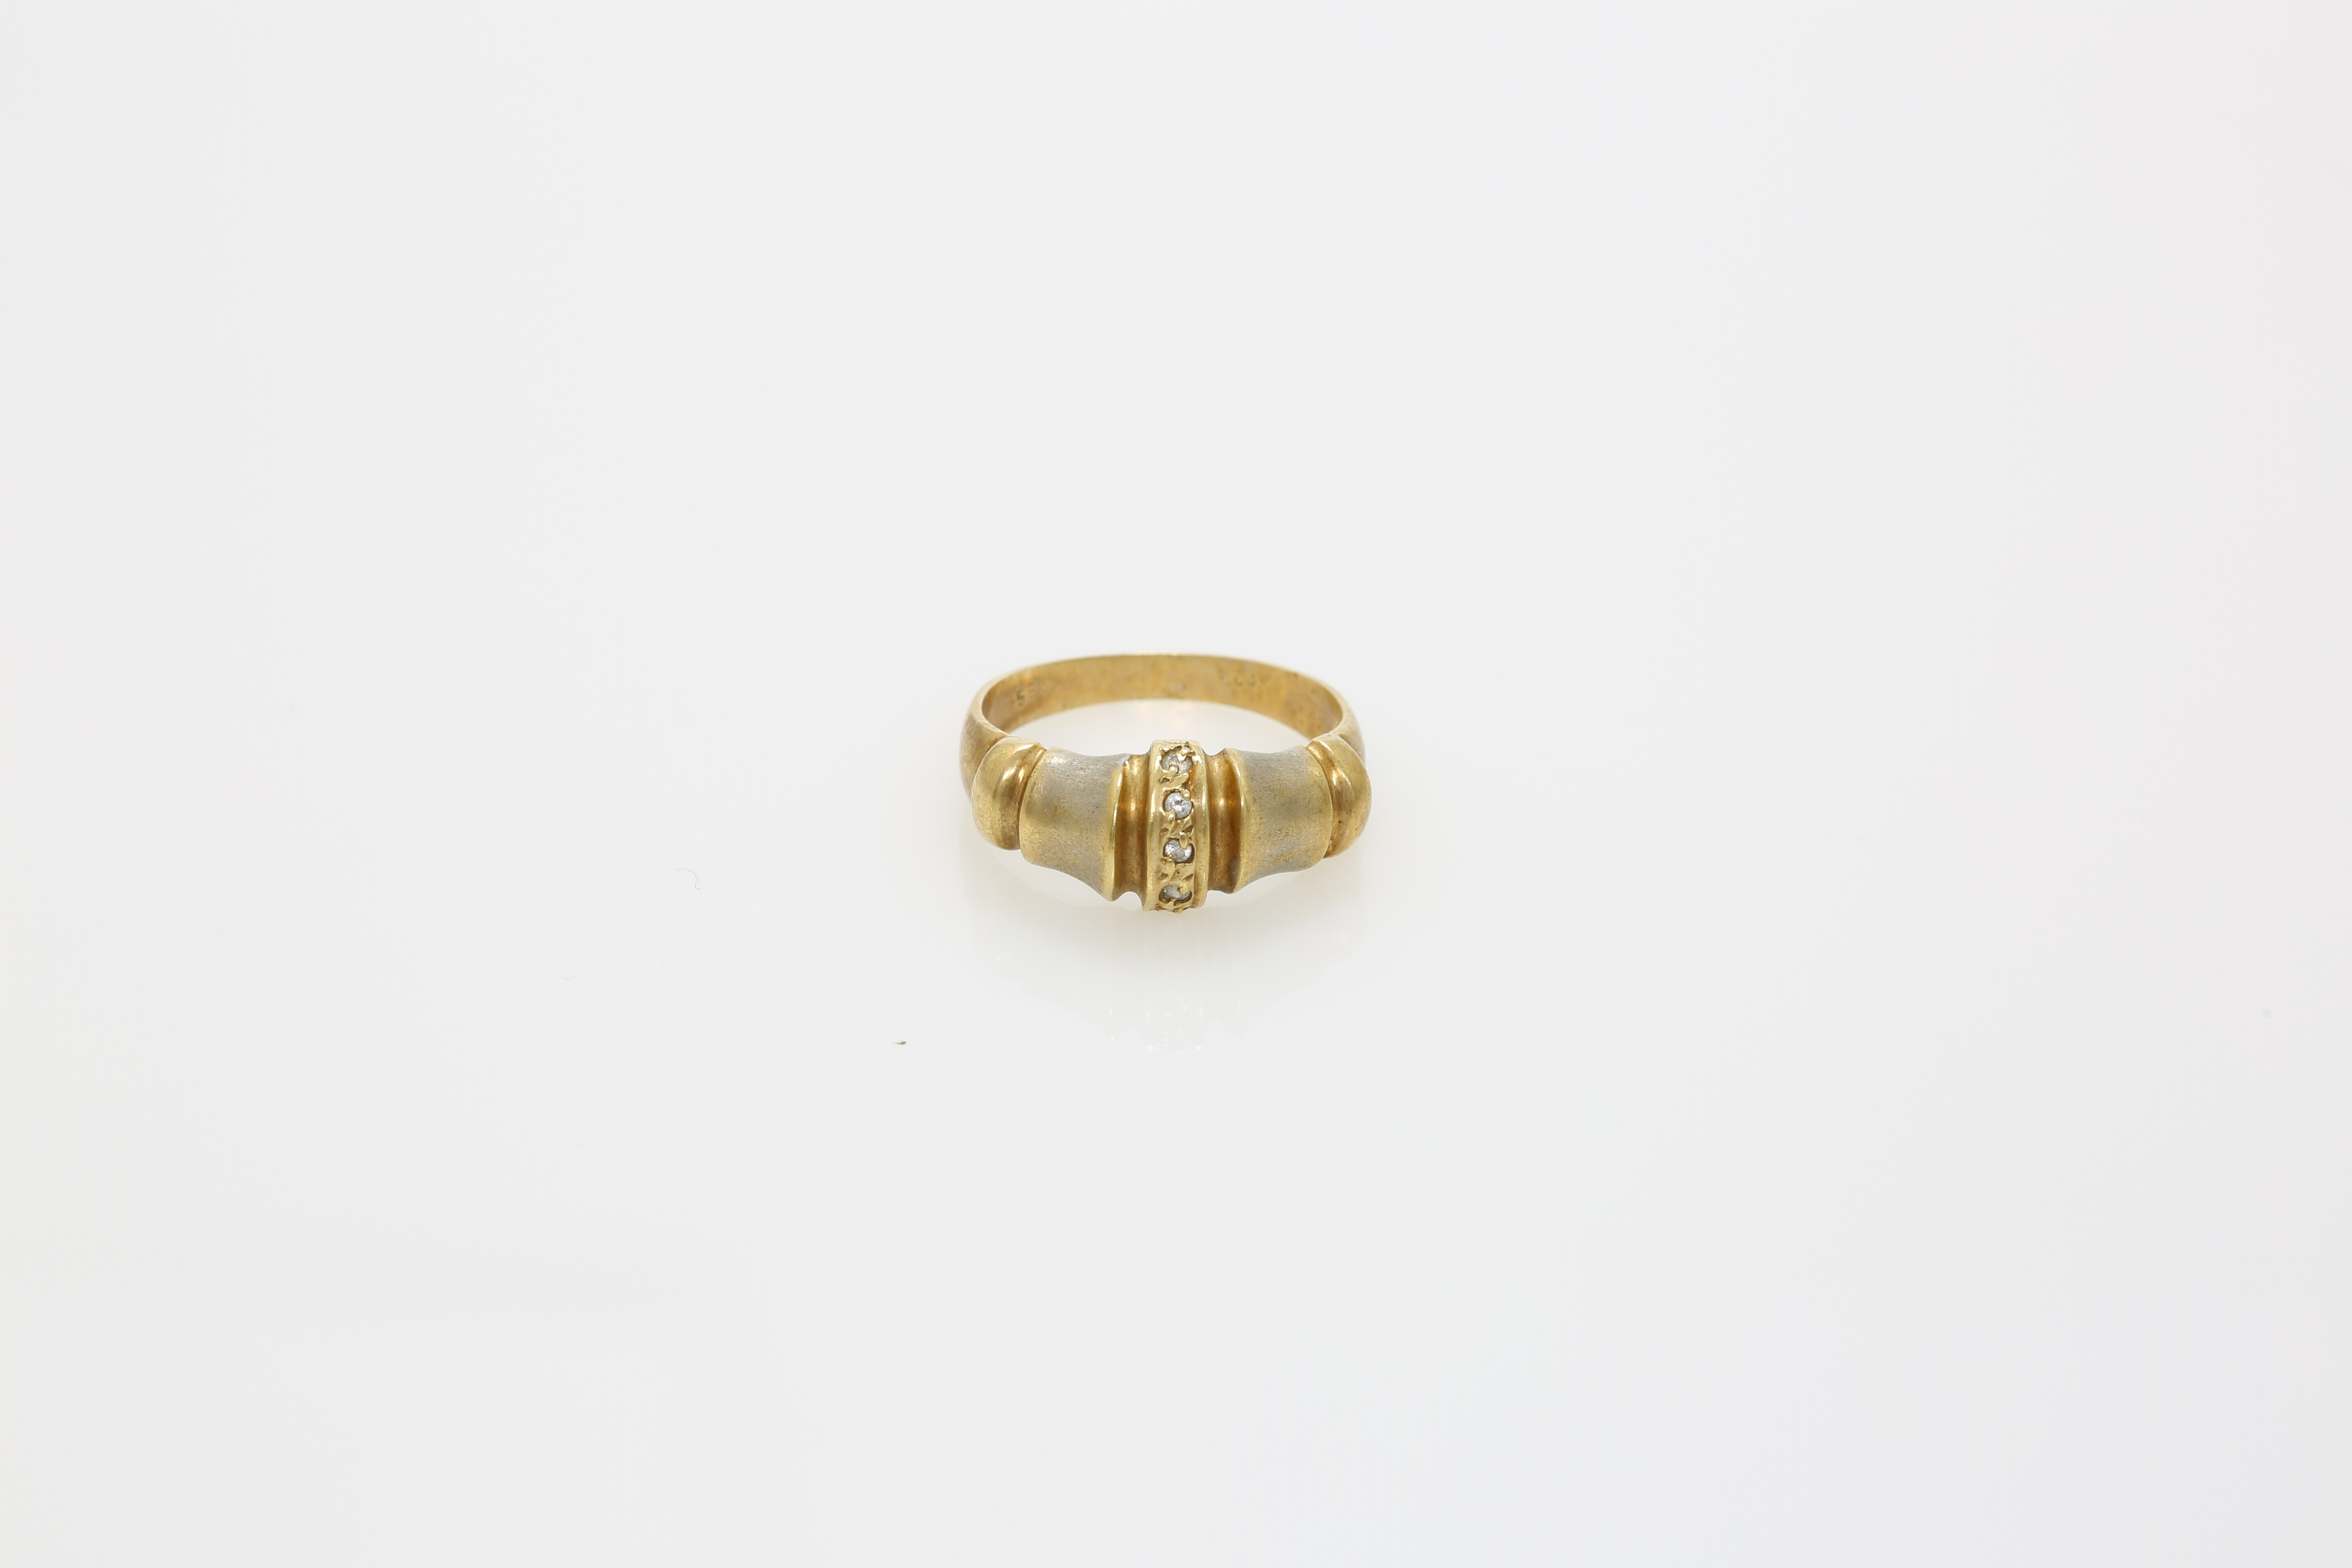 A Lady's 14K gold ring. Approx: 3 gr. - Image 2 of 2